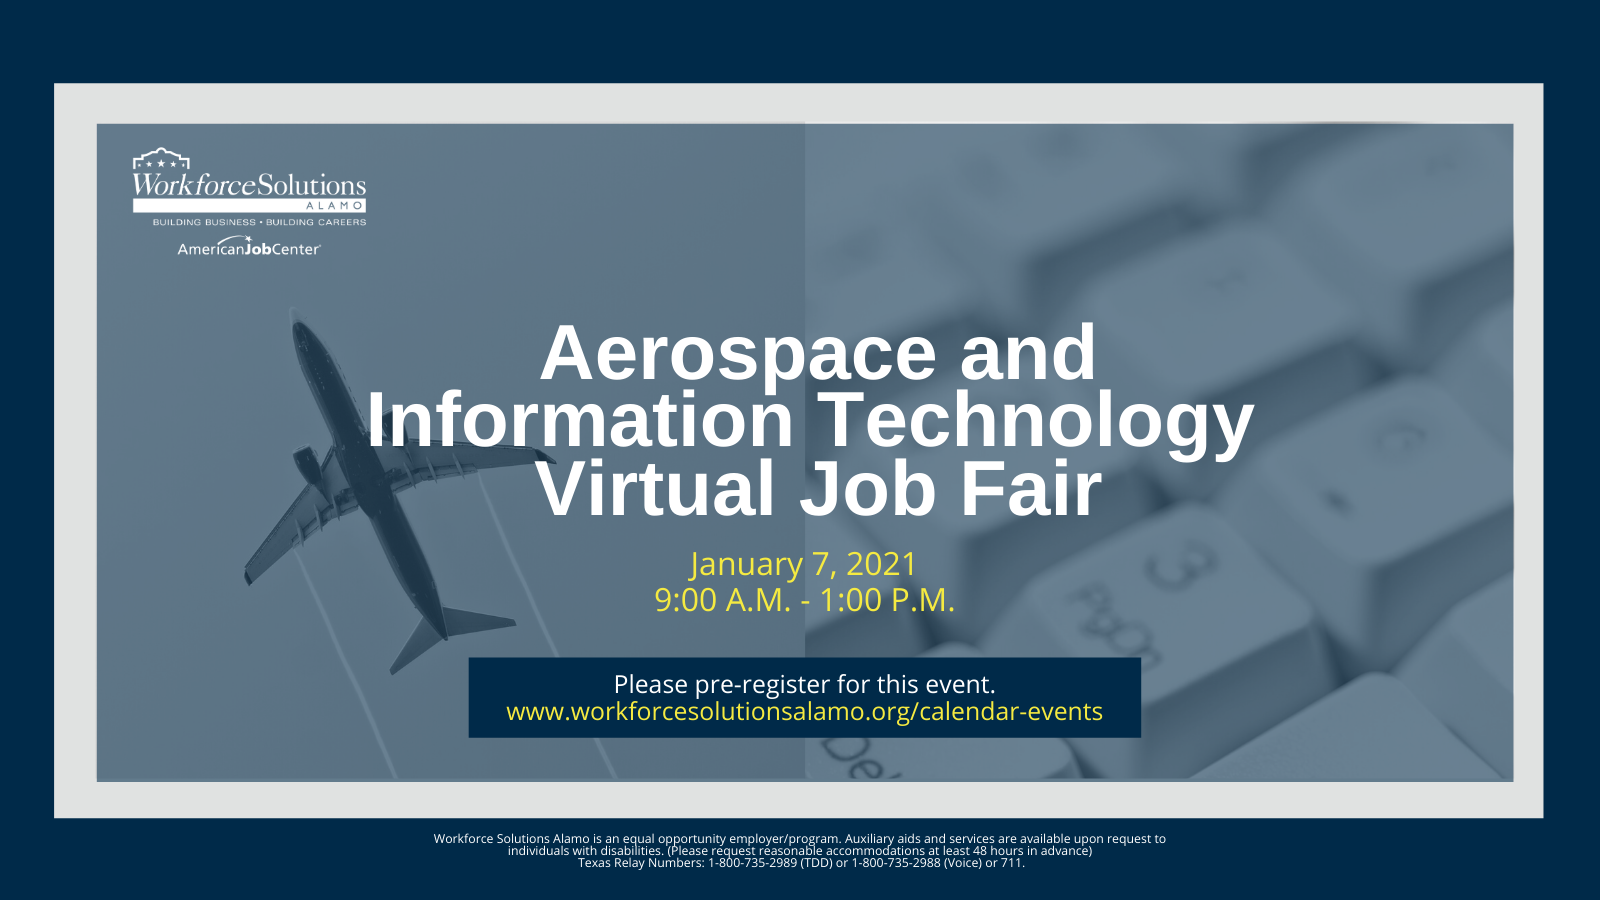 Flyer for Aerospace and Information Technology Virtual Job Fair, held Jan. 7, 2021 from 9 AM - 1 PM